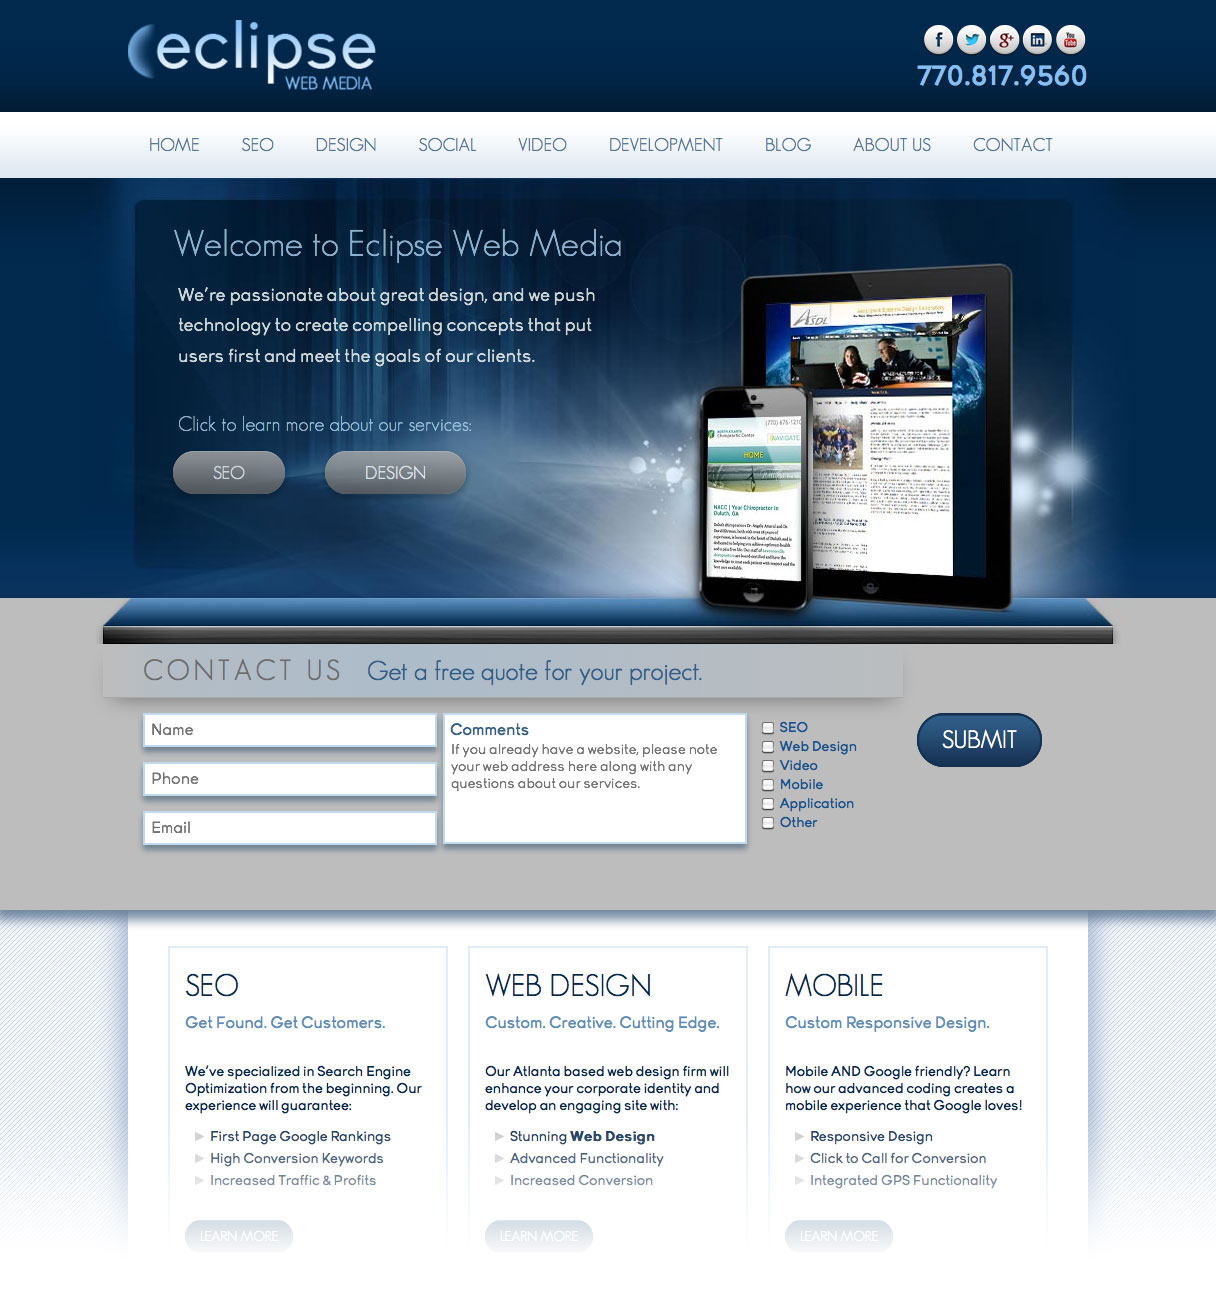 eclipse-web-media-full